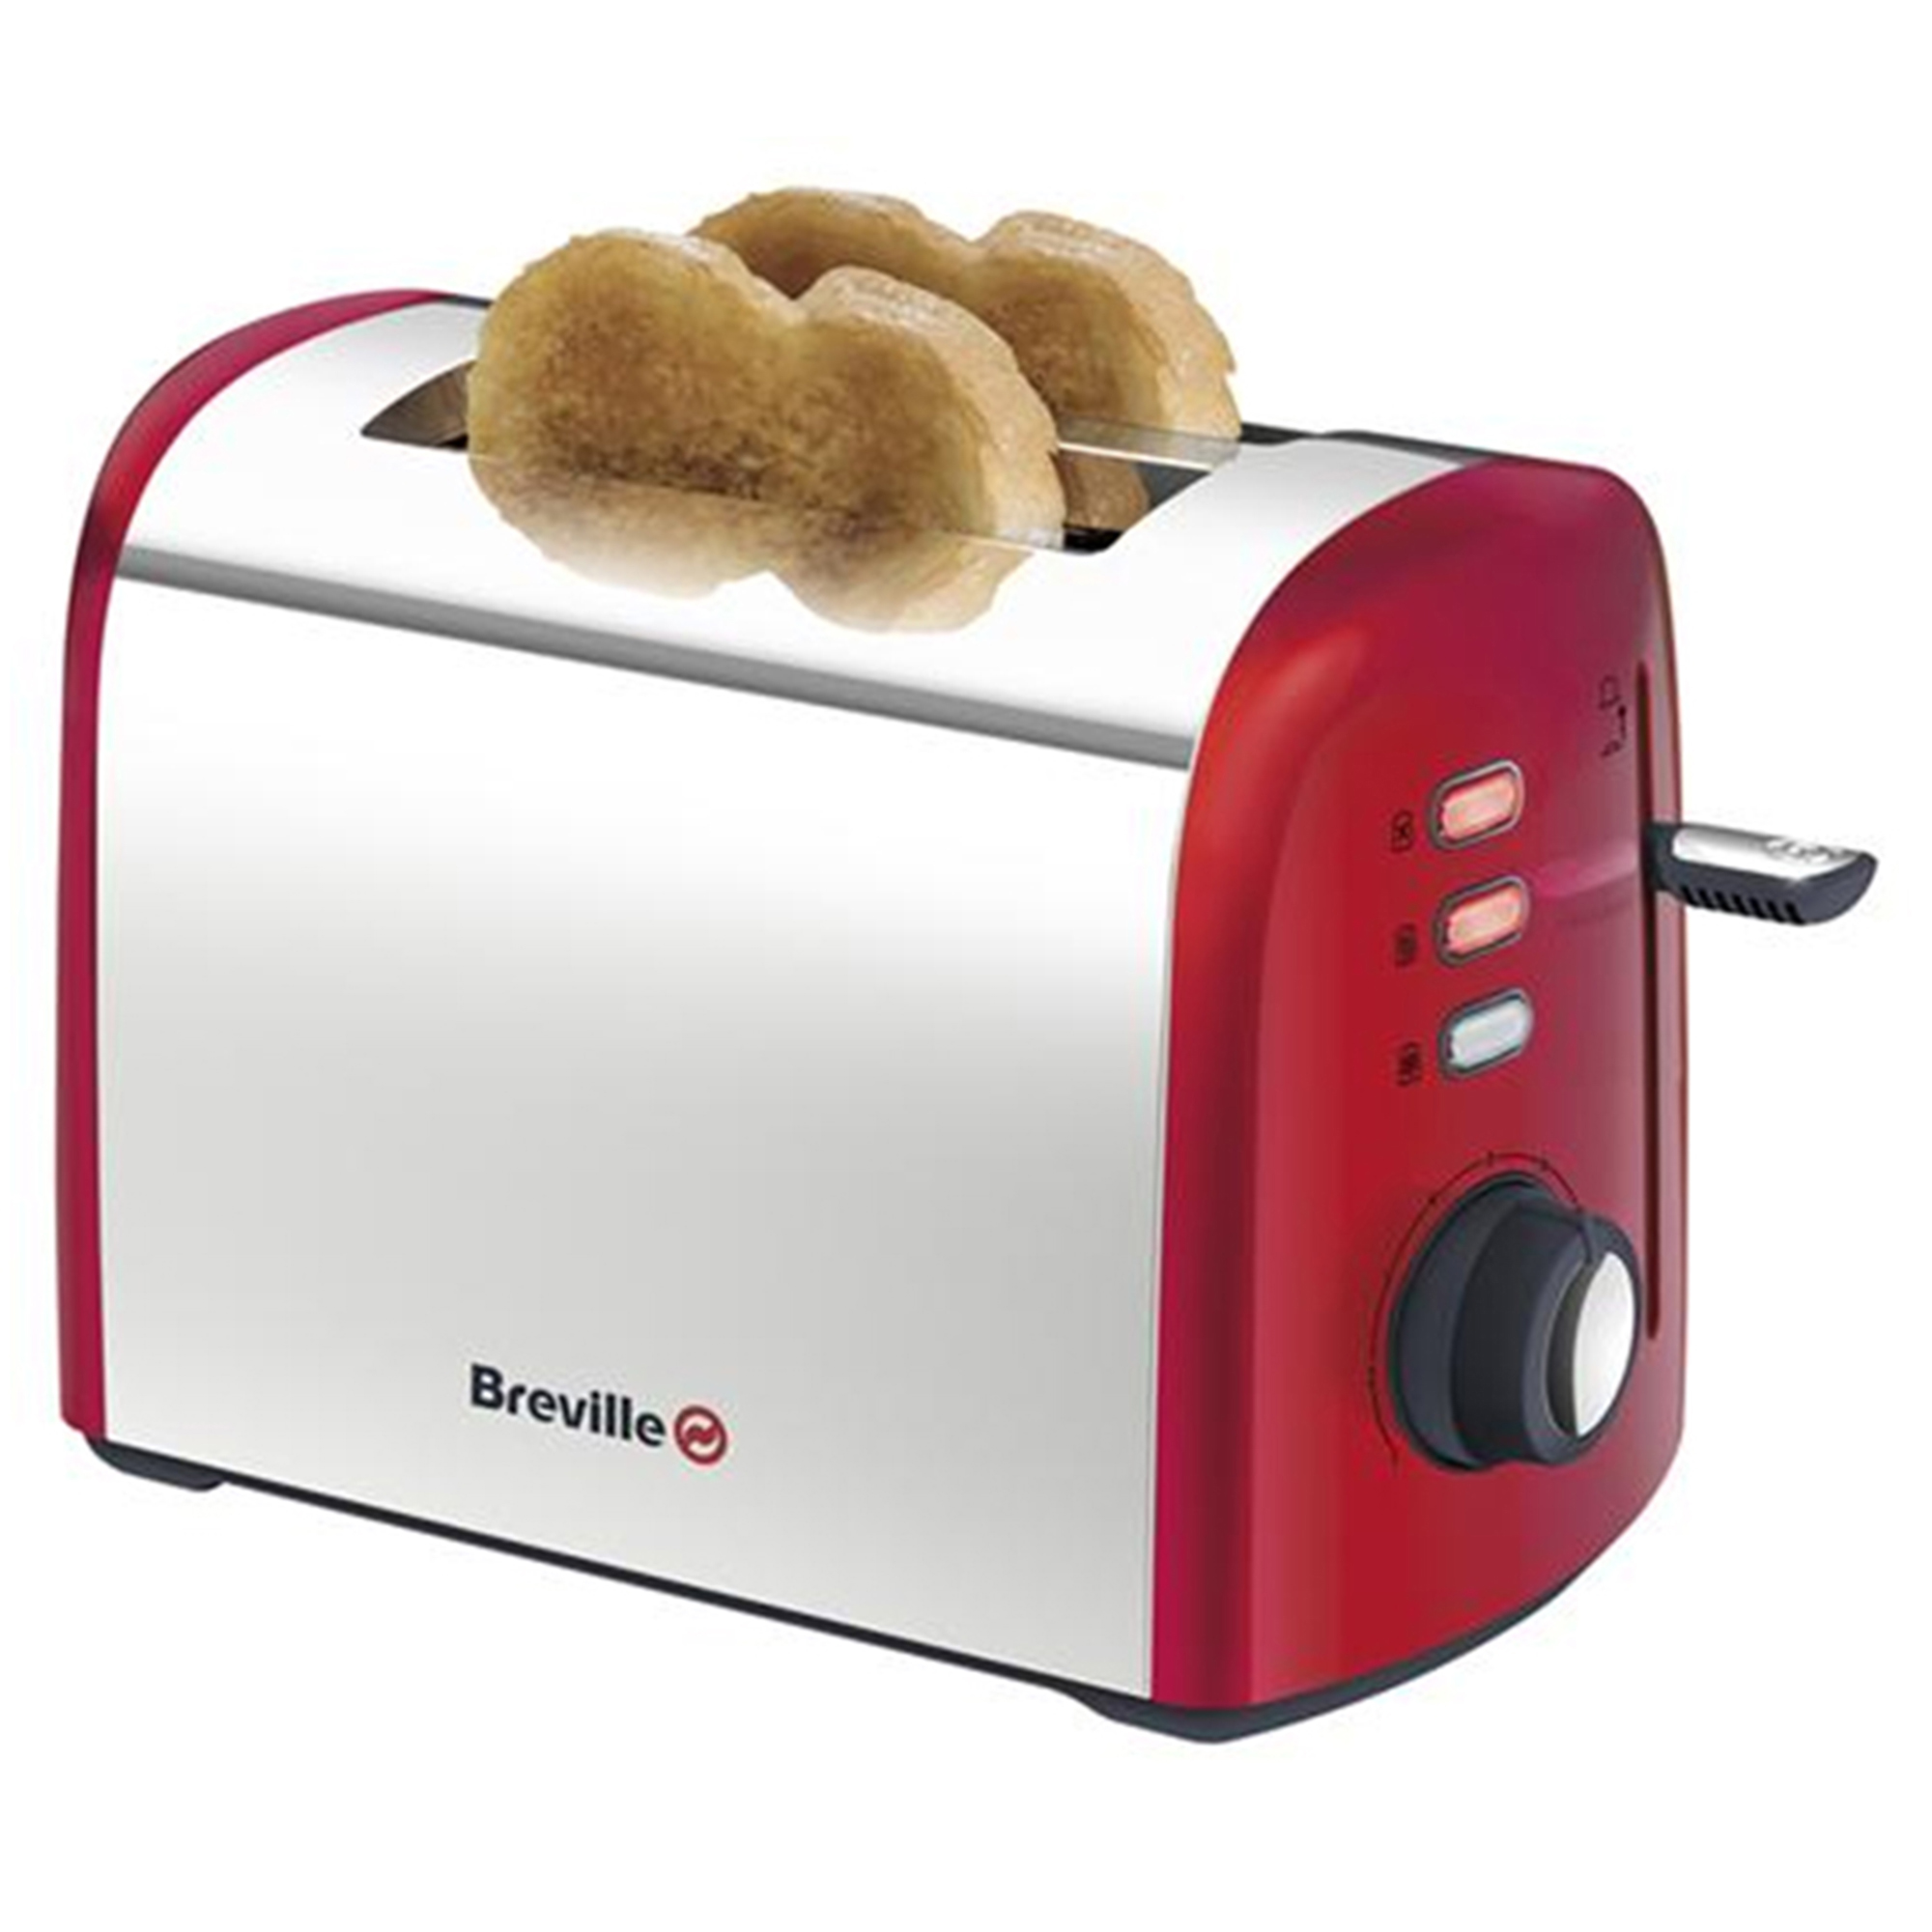 Breville Red Collection 2 Slice Toaster - Red No Colour